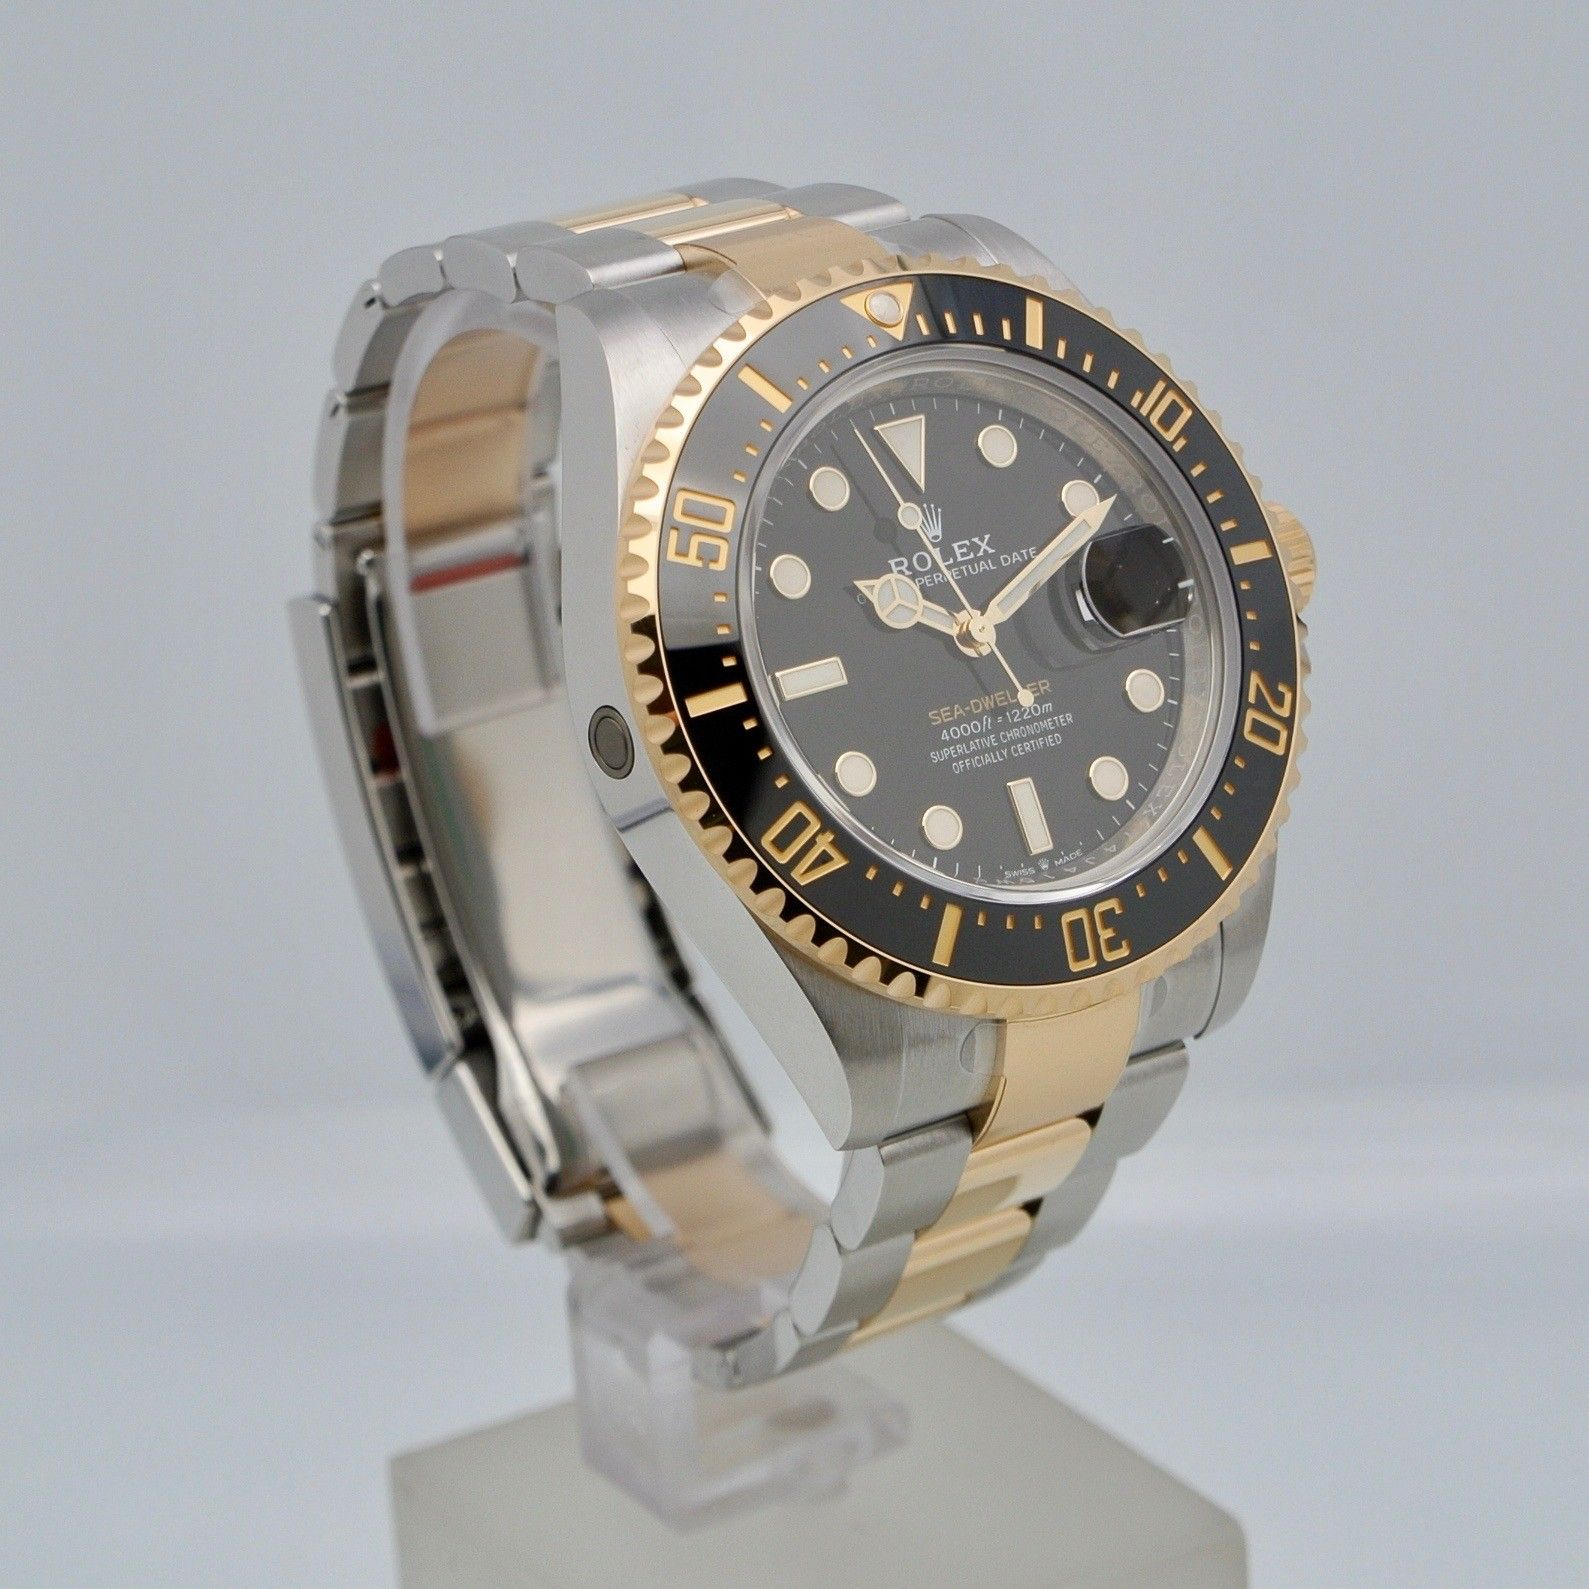 Rolex Sea-Dweller steel/gold